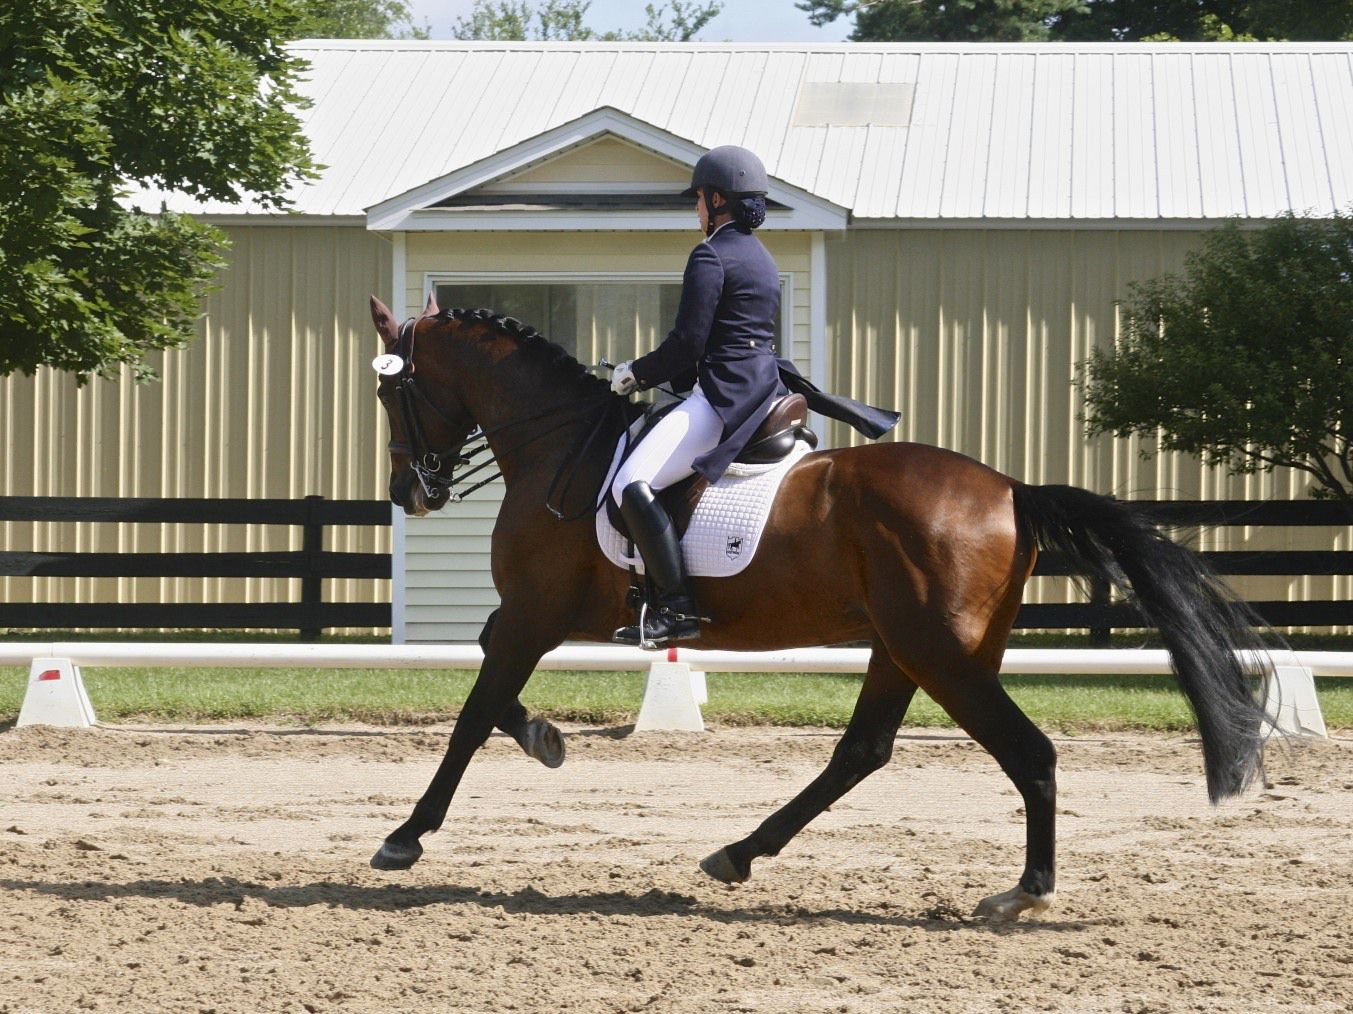 Westerstorm&Kate Fleming-Kuhn, owned byPhil Pan & Deb Klamen, were both the KWPN highpoint as well as the Grand Prix highpoint